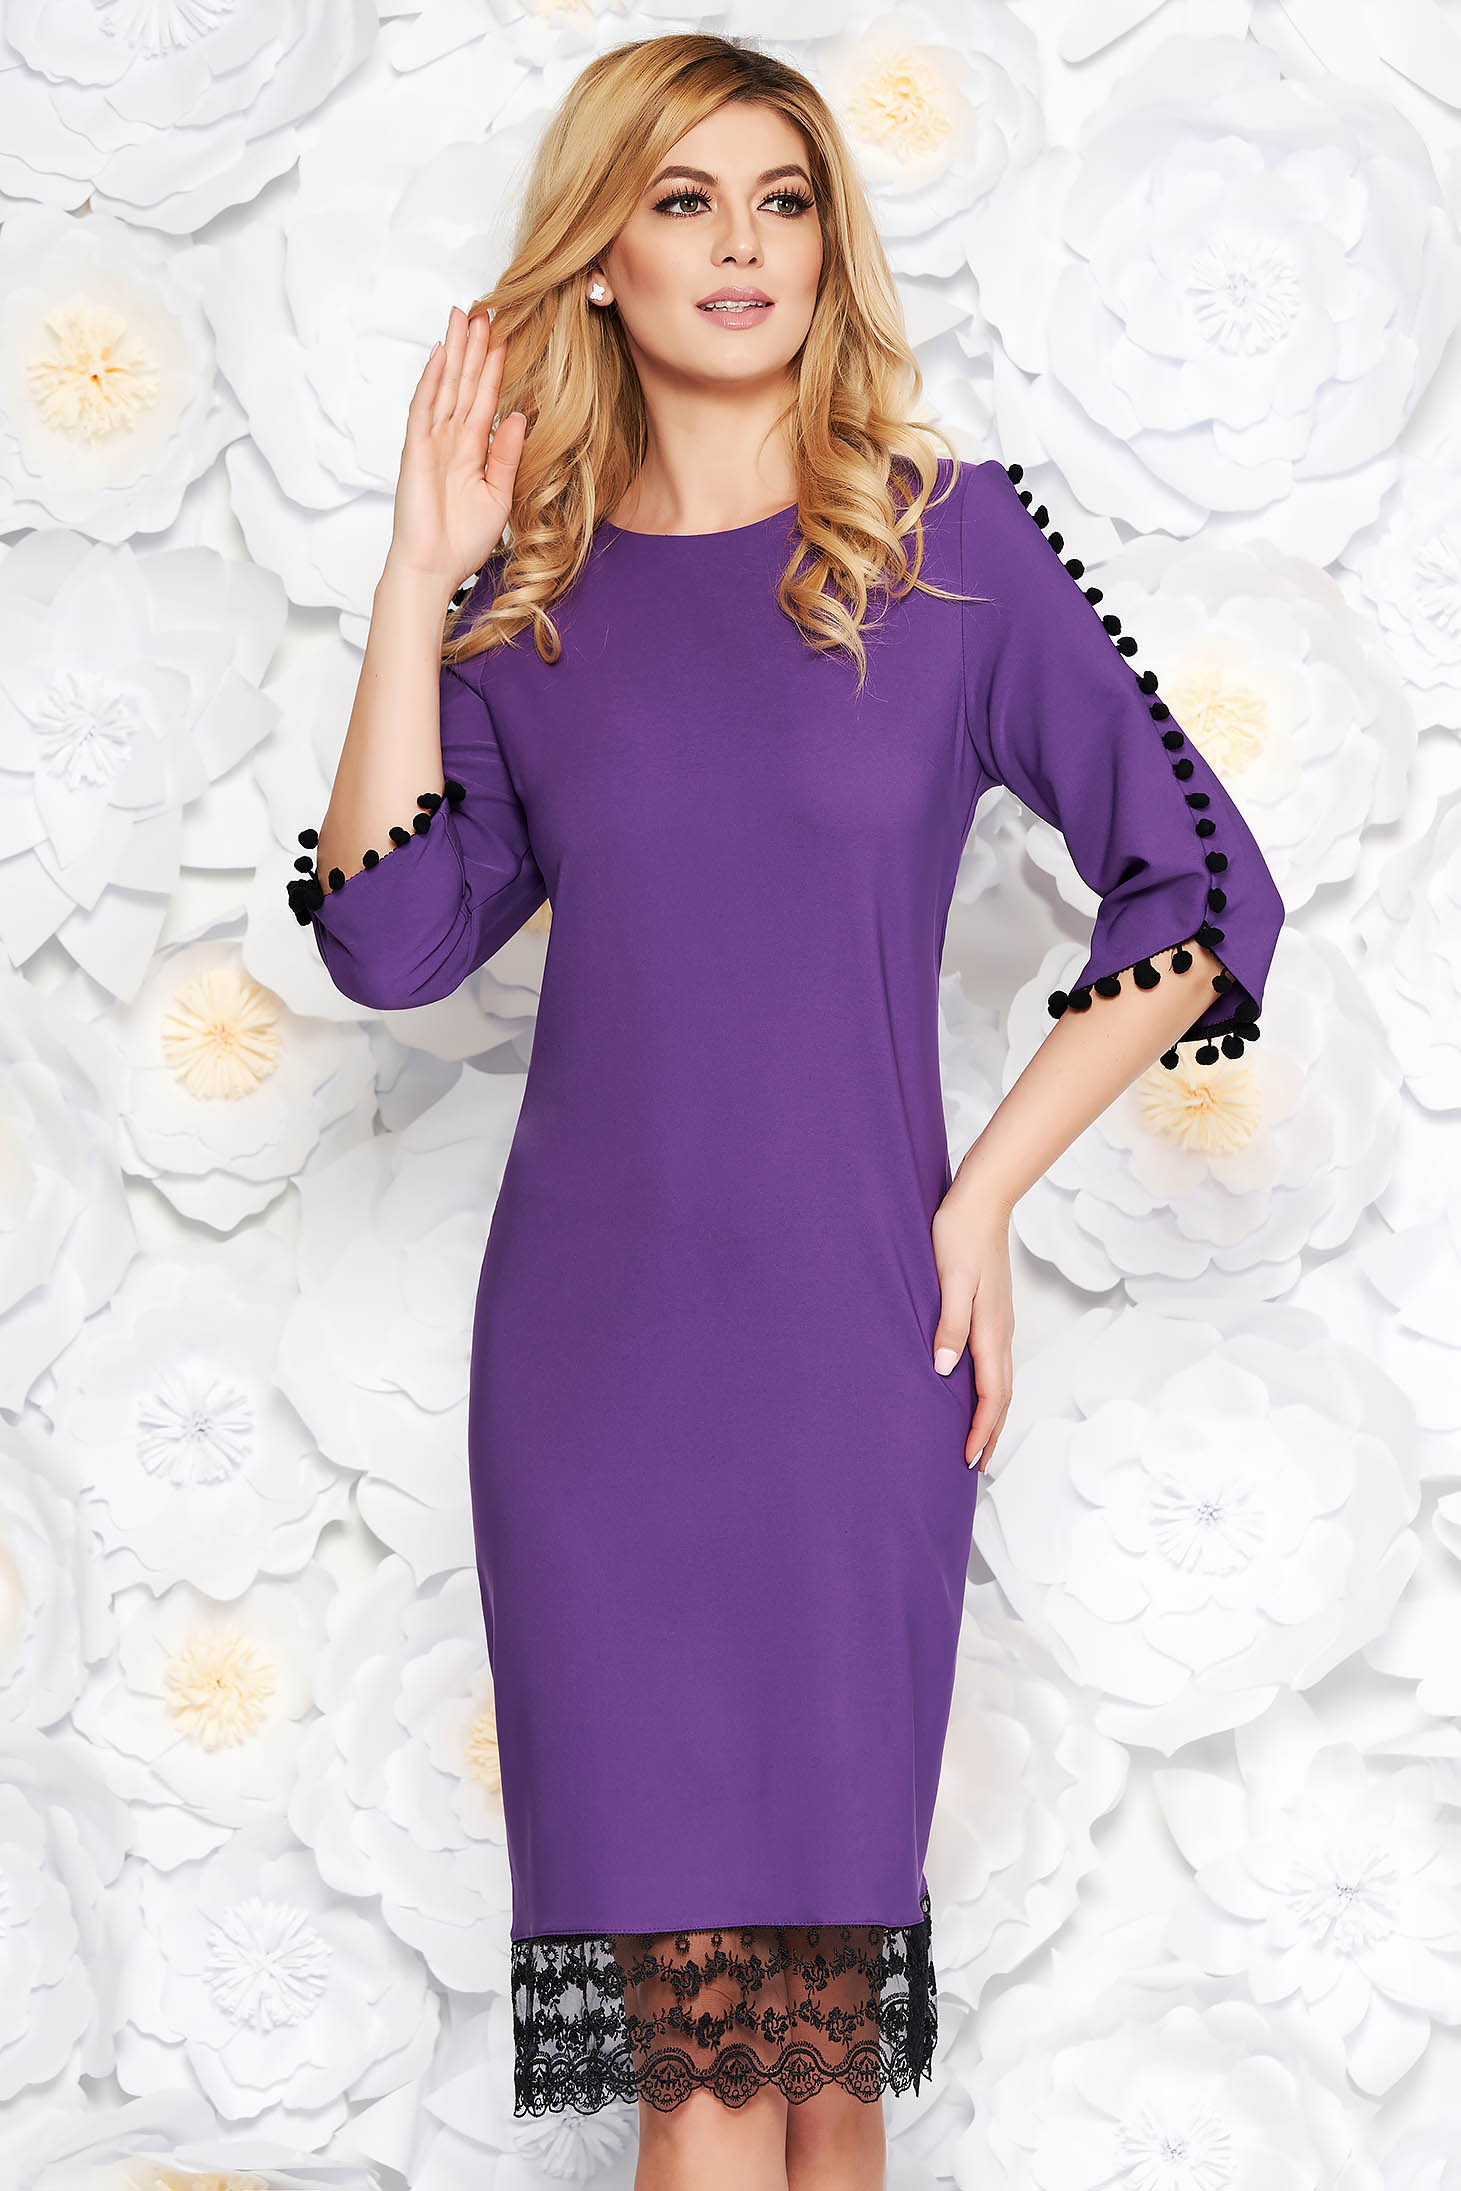 Purple elegant straight dress slightly elastic fabric with lace details with tassels